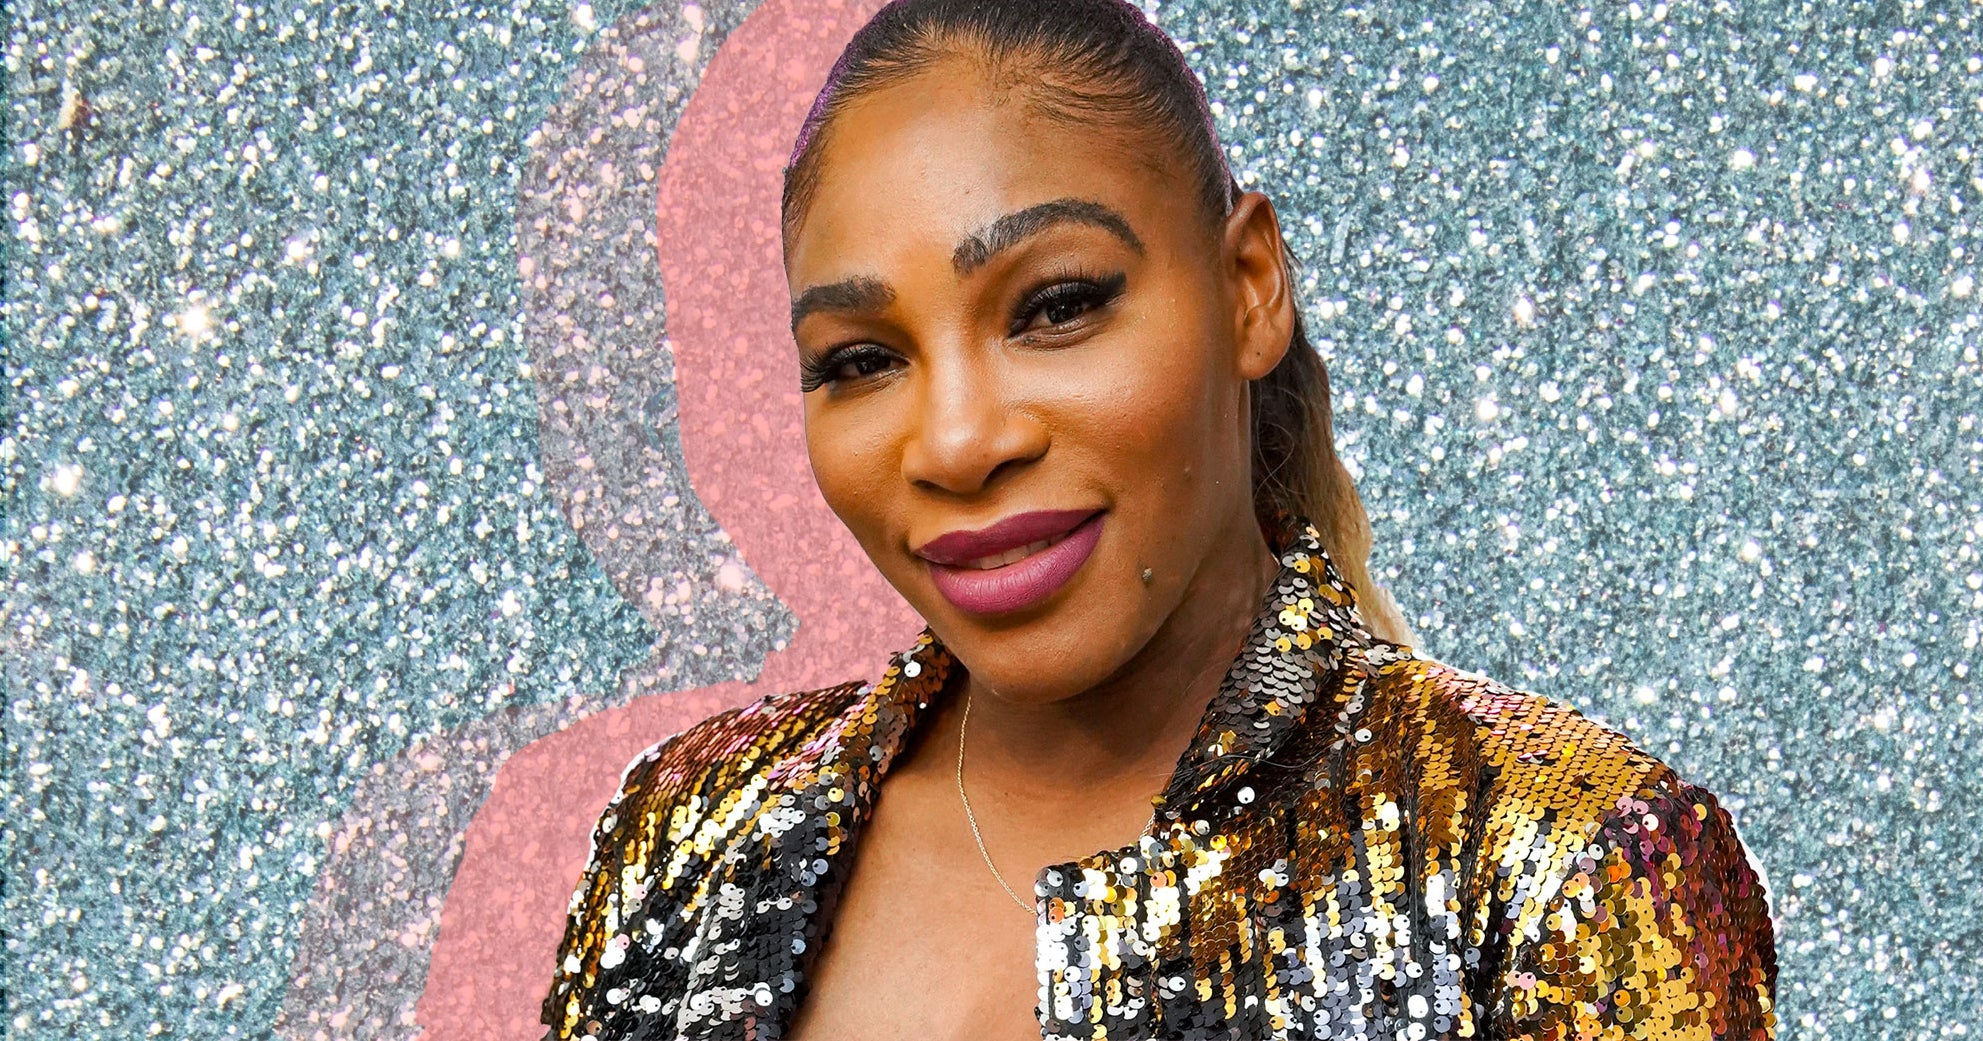 Serena Williams Takes On 2019's Biggest Hair Trend, Yacht-Style